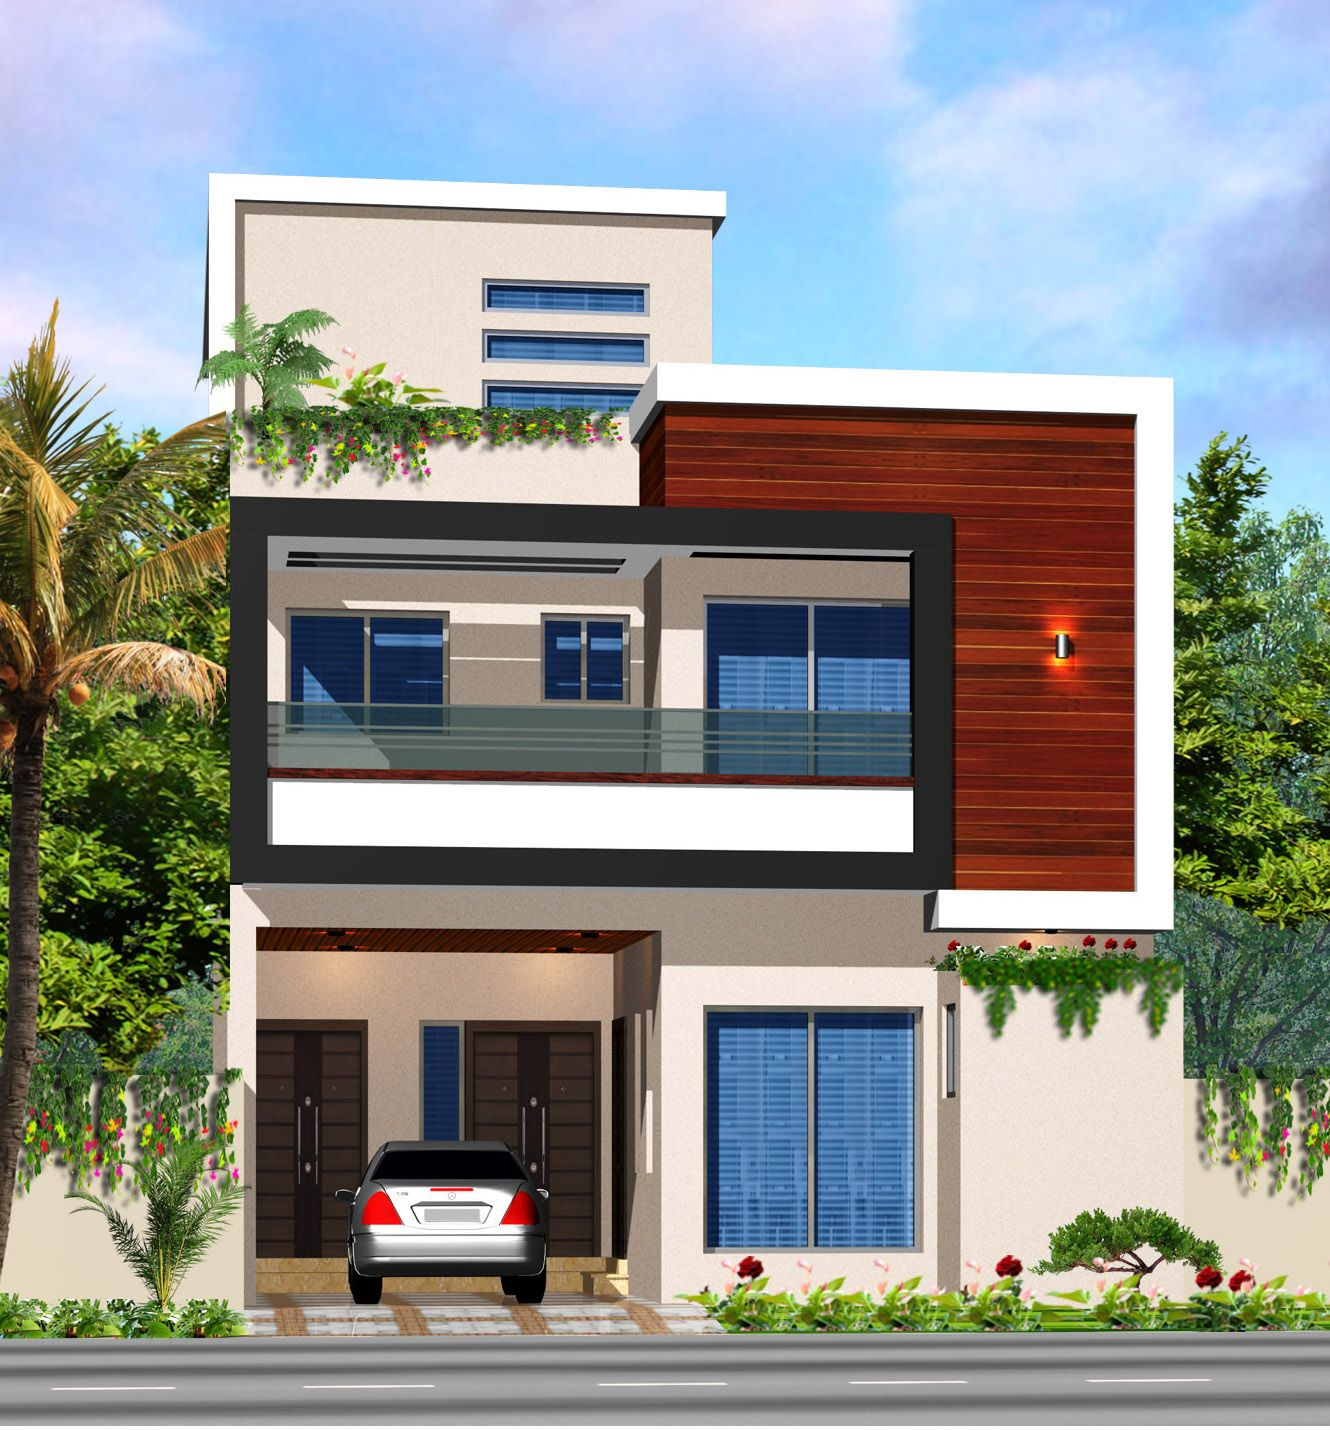 hajvery homes lahore minimalis house duplex independent front elevation also glory architecture gloryxboy on pinterest rh